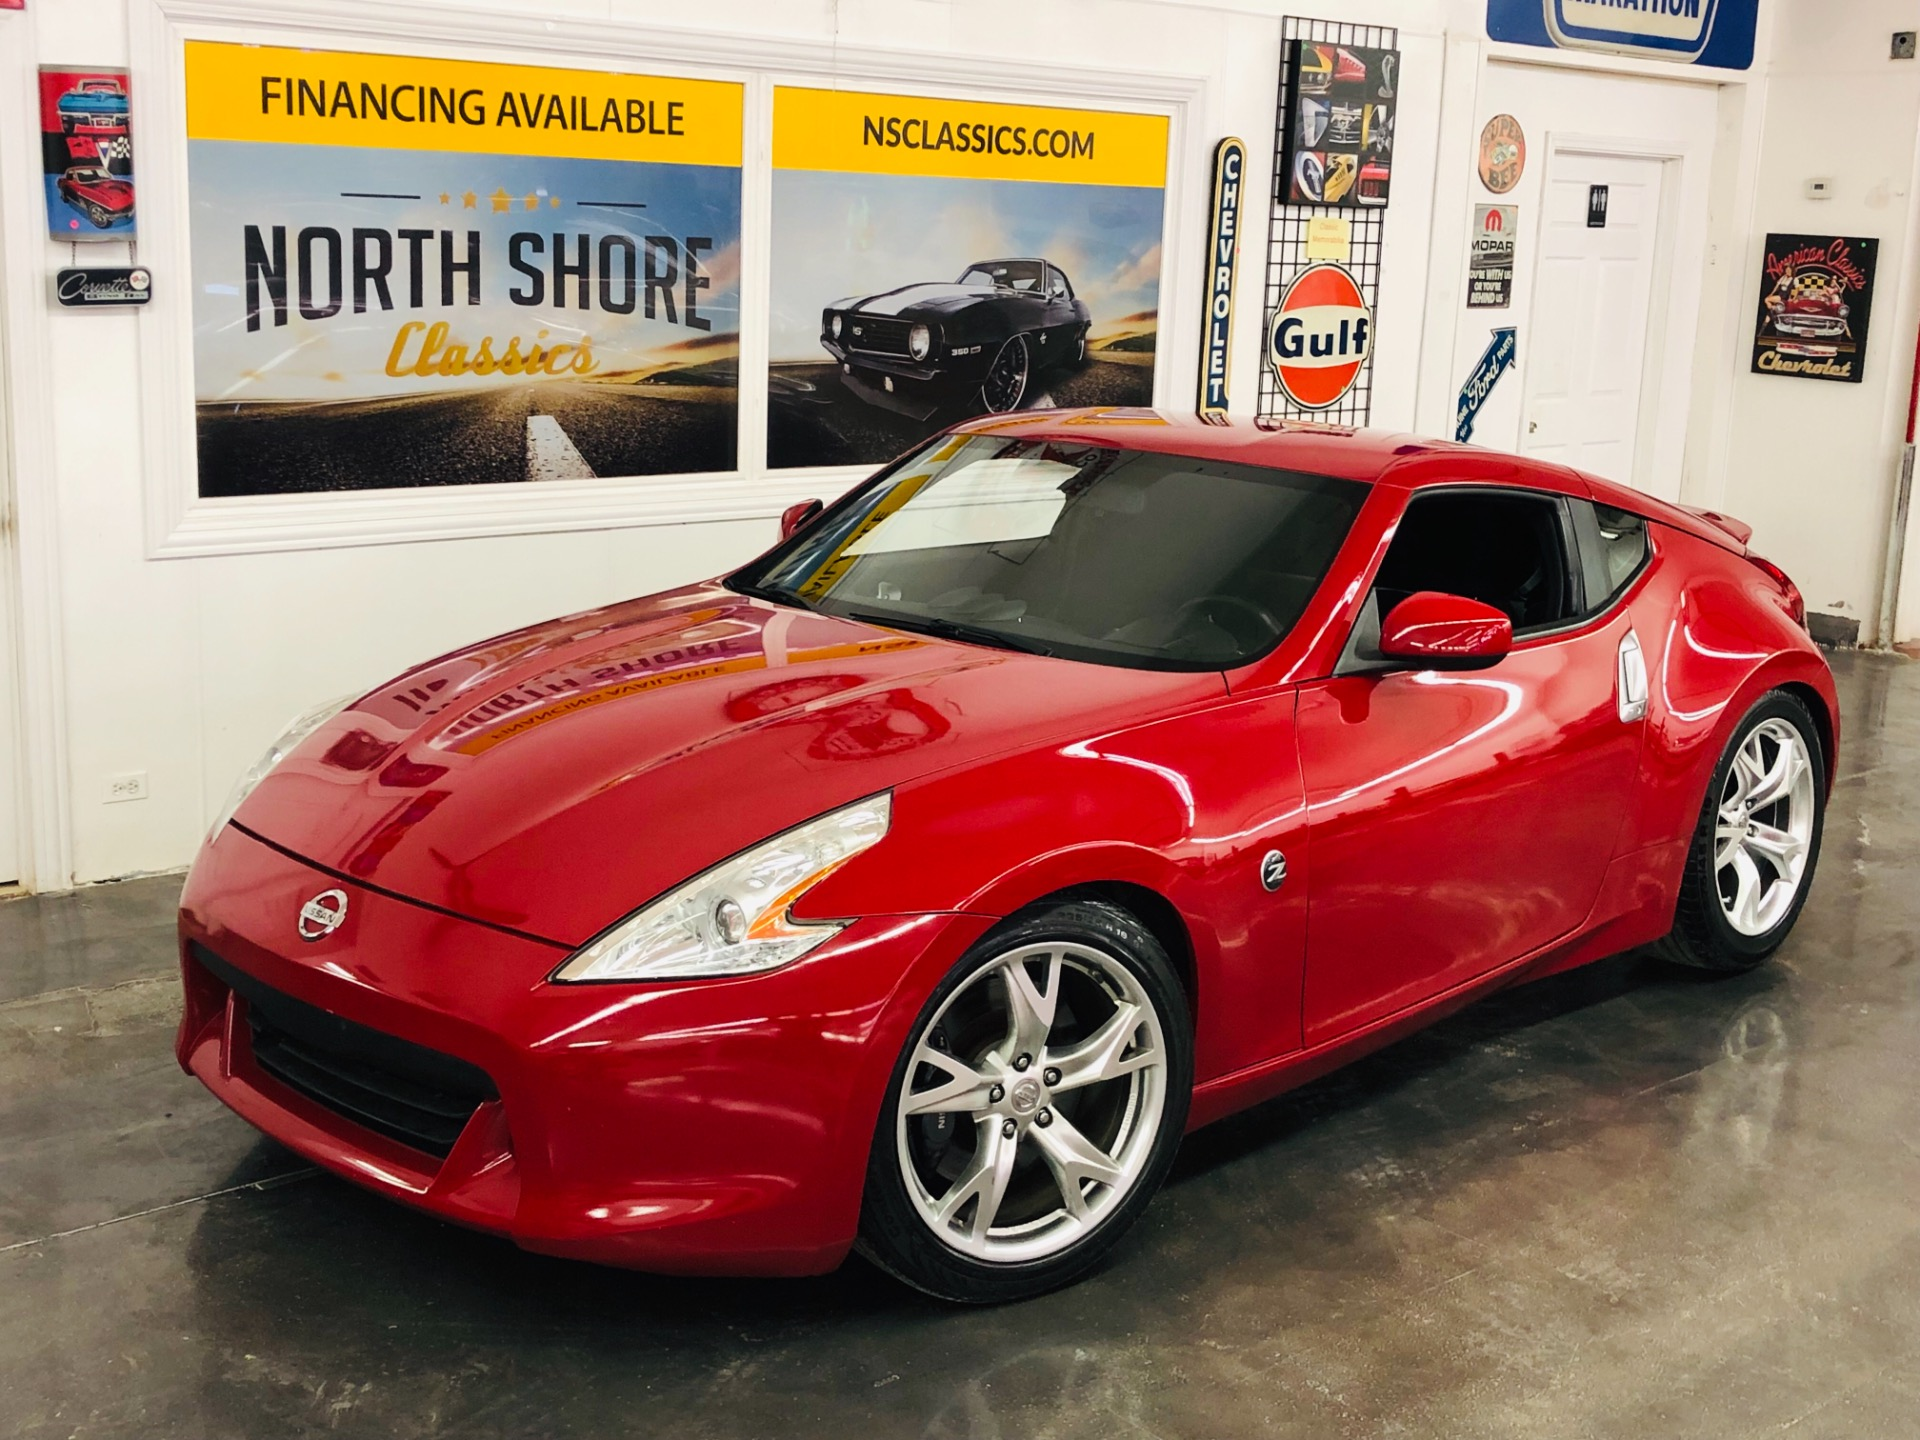 Used 2011 Nissan 370Z -TOURING-2dr COUPE-3.7L-6 SPEED MANUAL-ITS READY FOR YOU- | Mundelein, IL